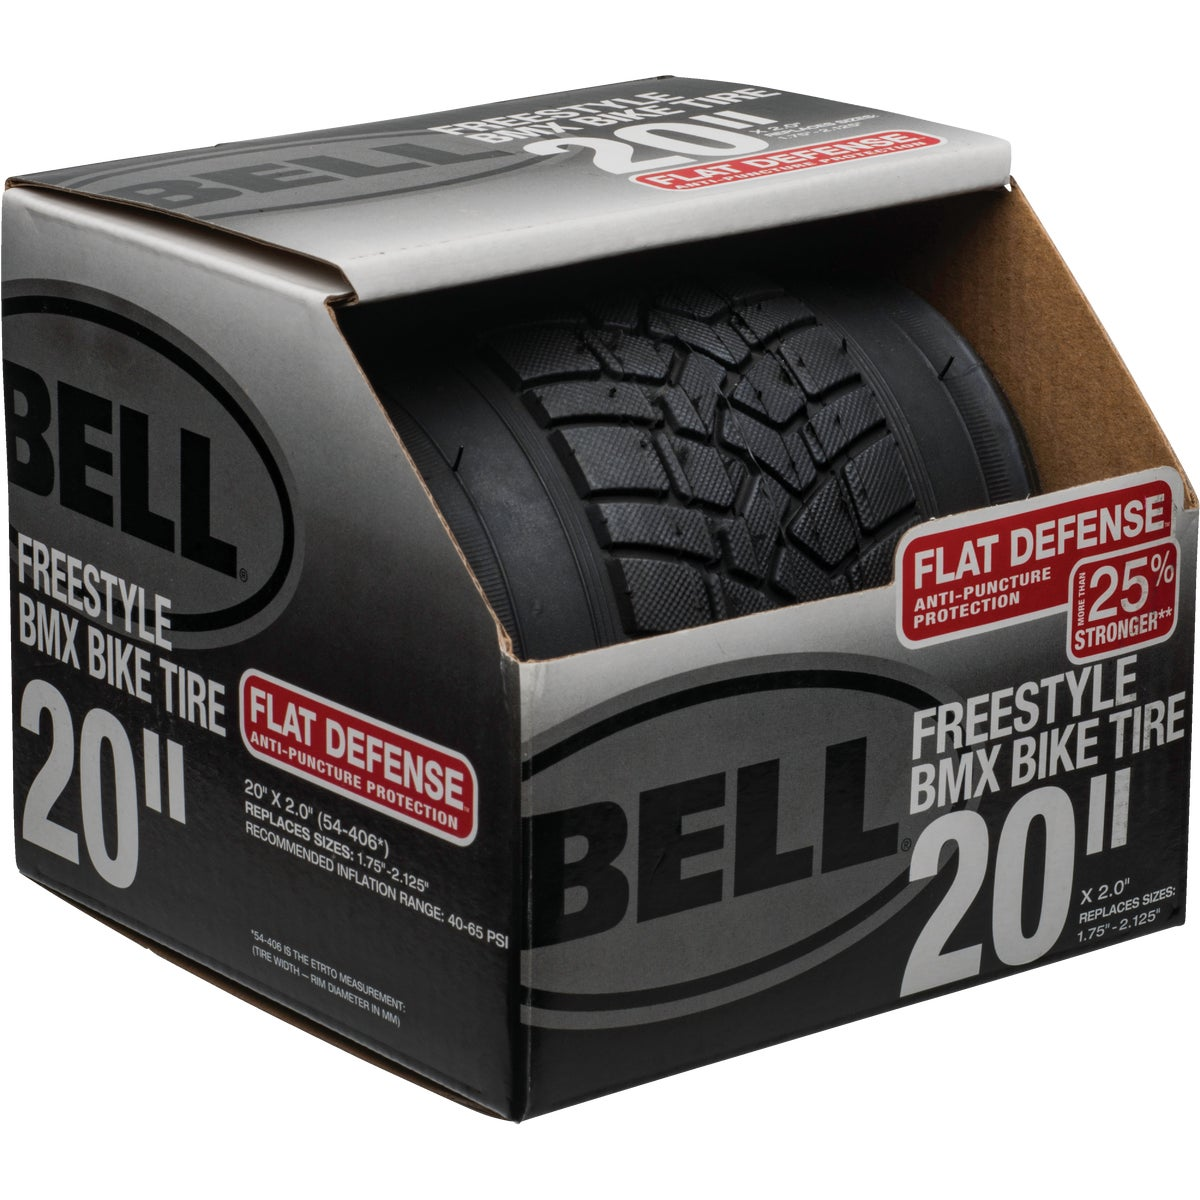 "20"" FREESTYLE BIKE TIRE"